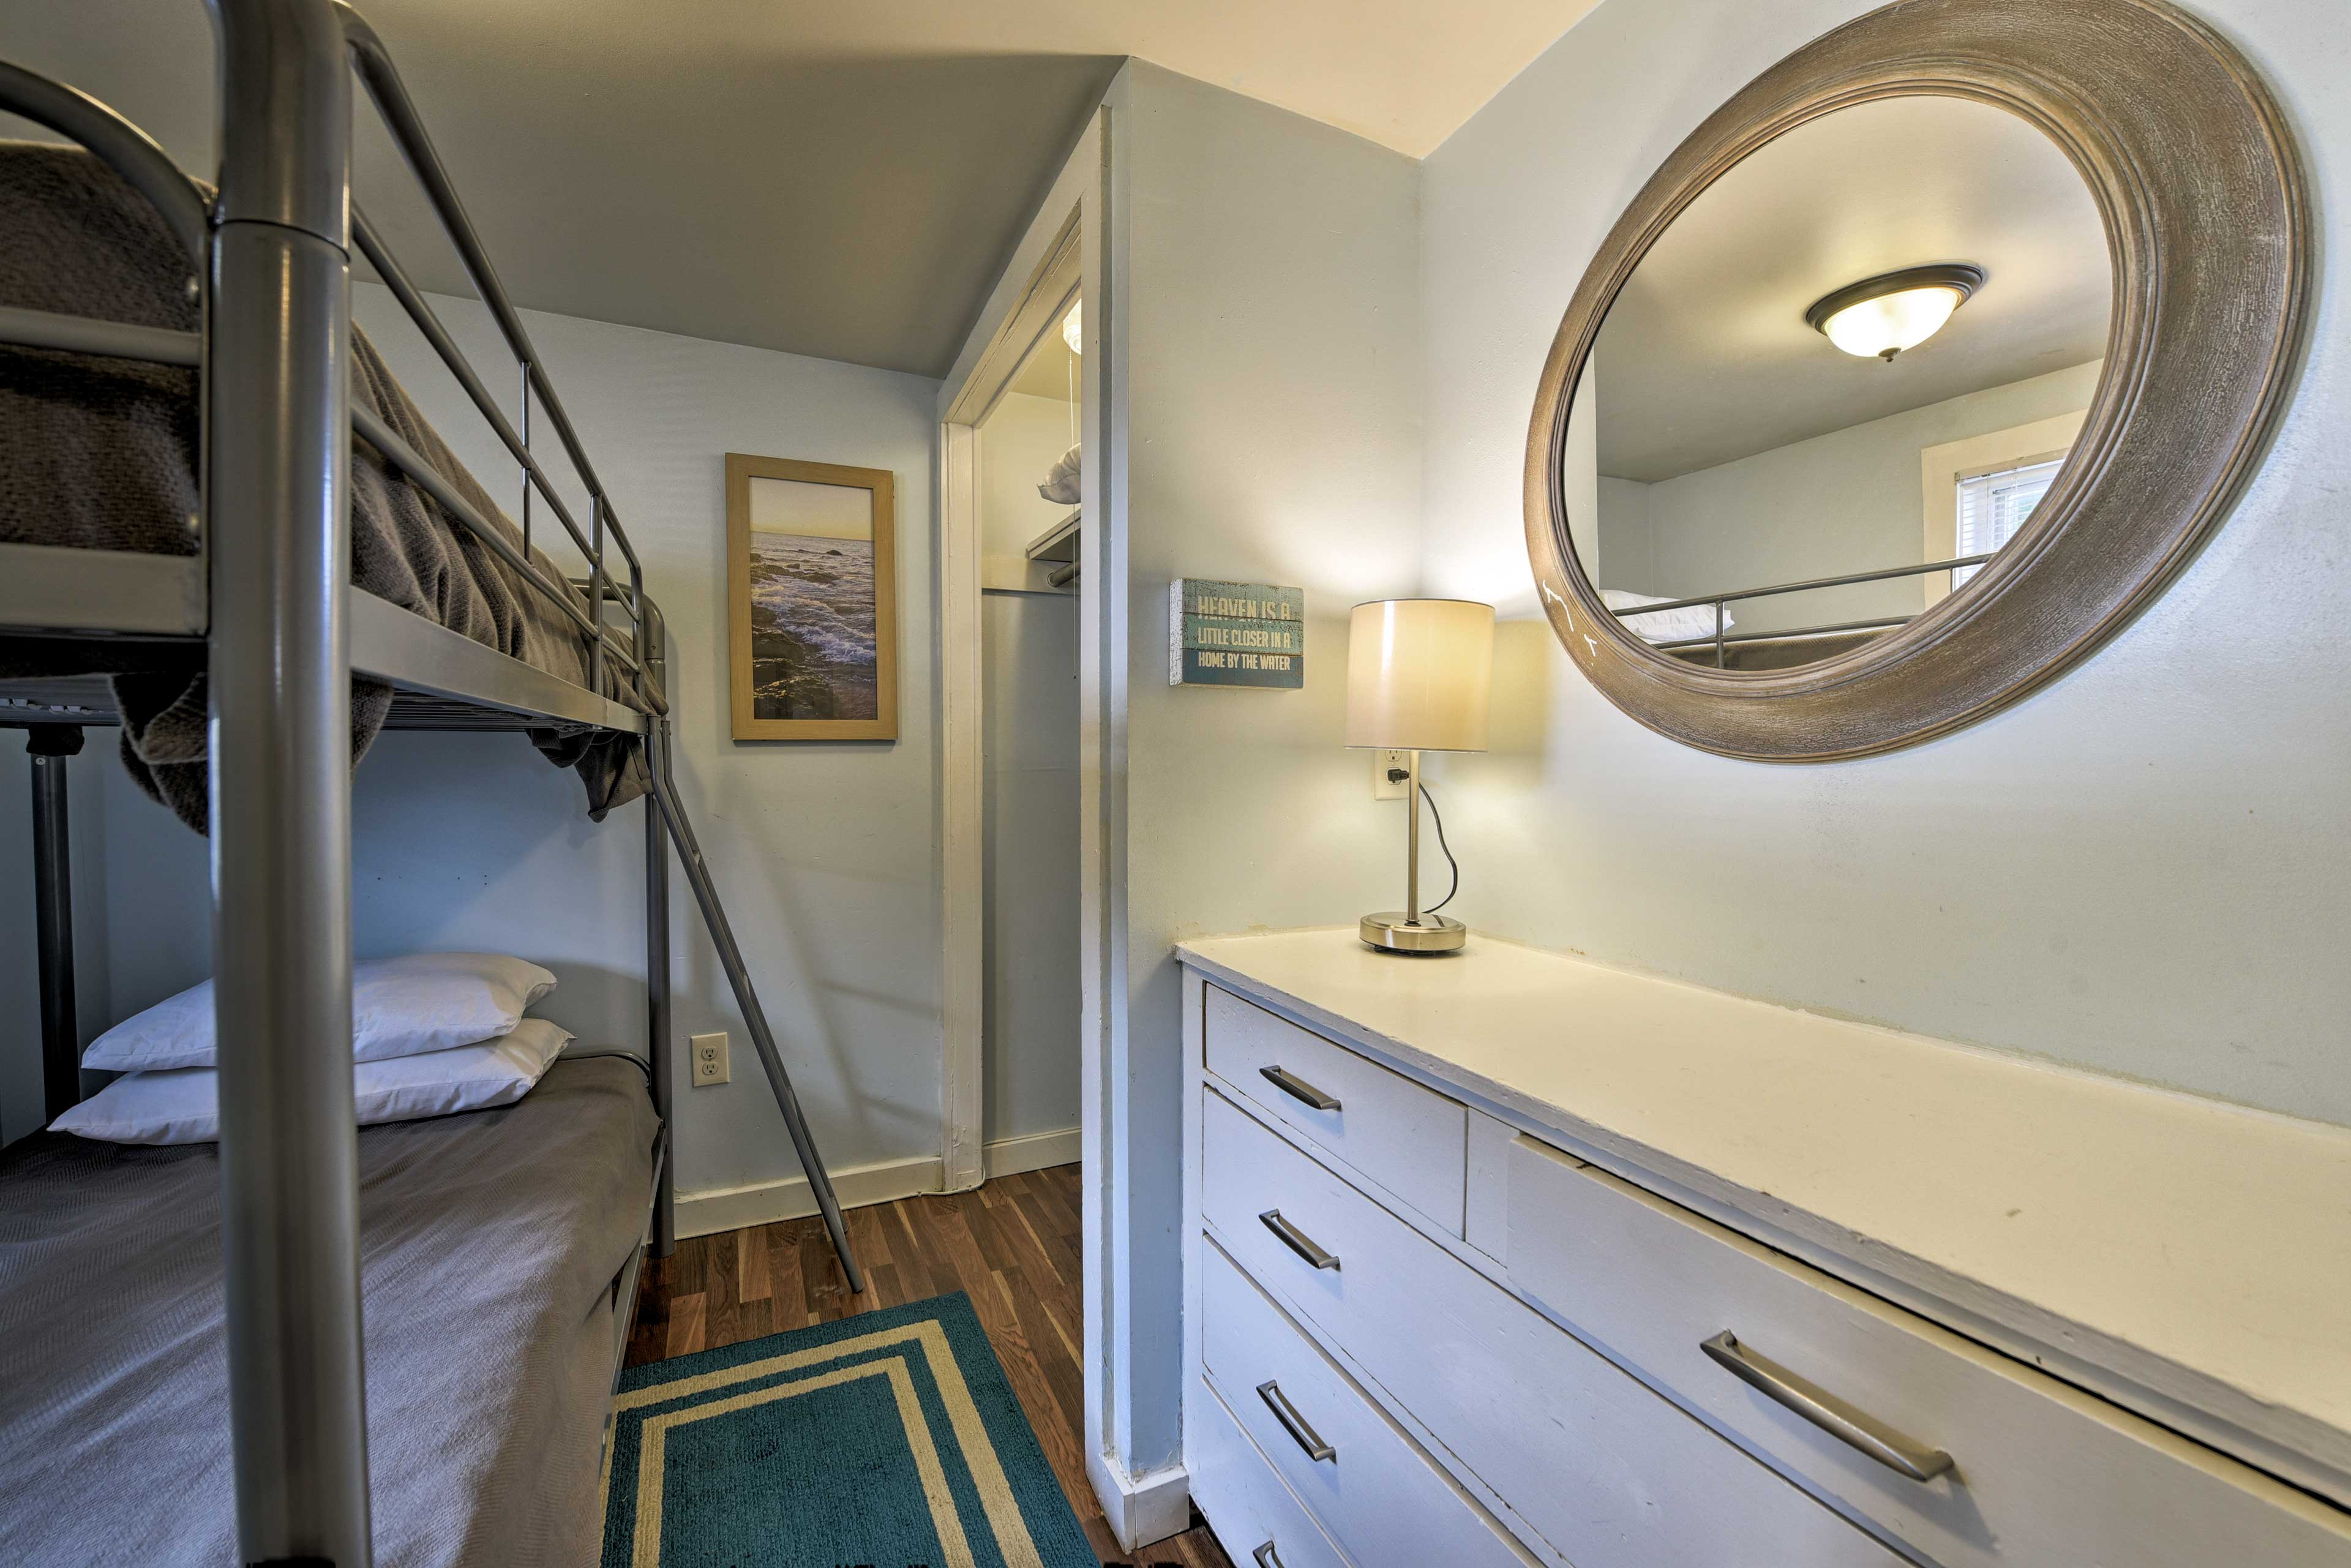 The twin-over-twin bunk bed comfortably sleeps 2.